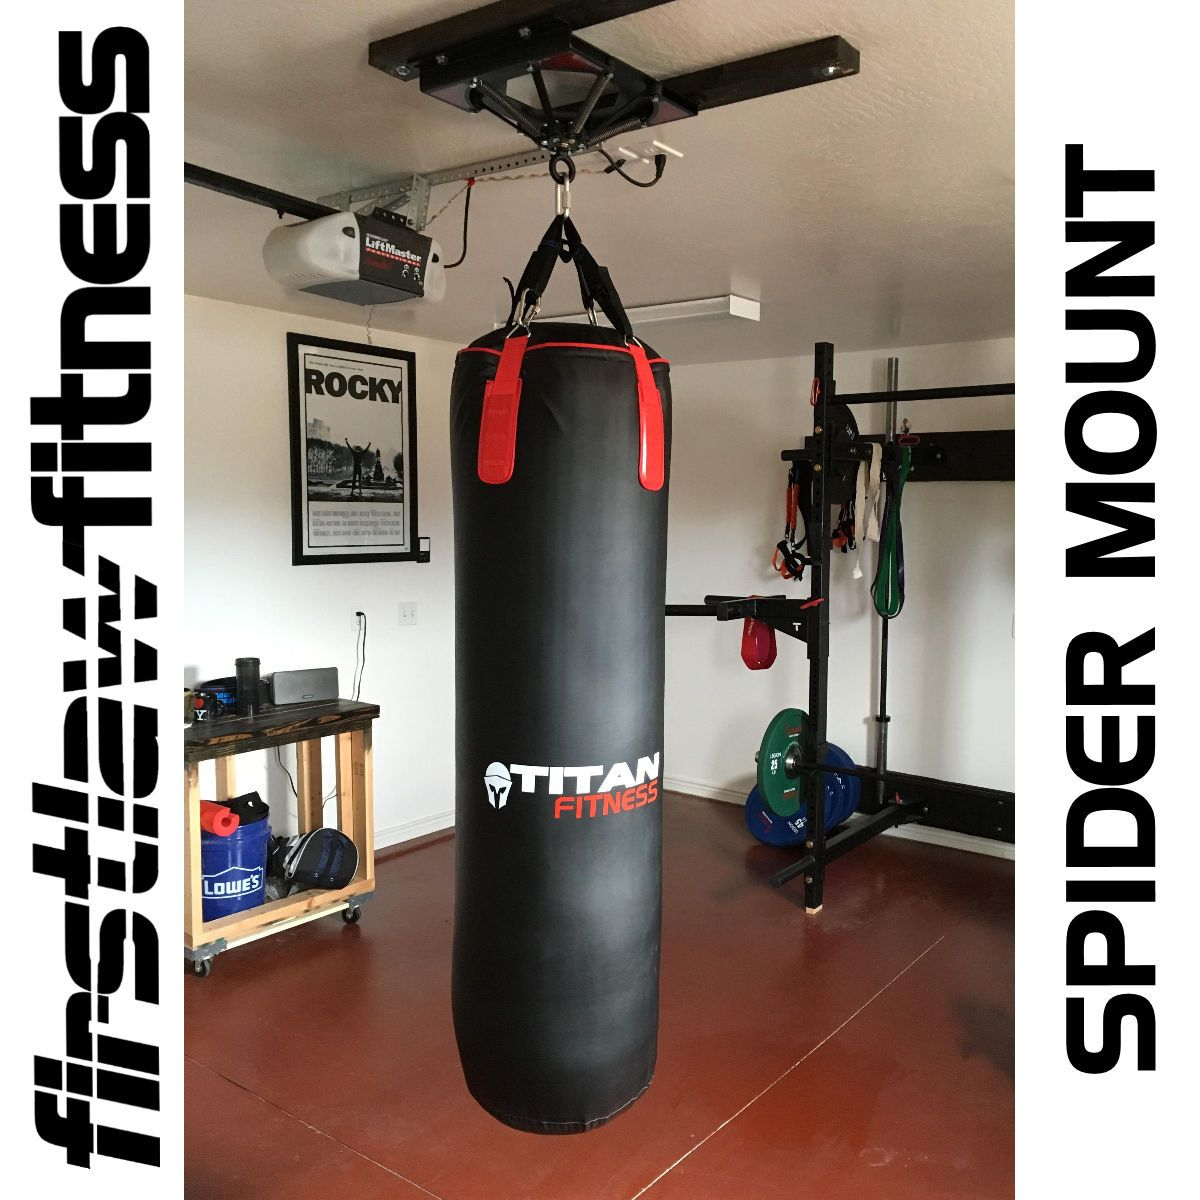 Another Spider Mount In A Great Looking Home Gym With A Titan Fitness Heavy Bag Betitanfit The Spider Mount Is The Best Heavy Bag Mount Heavy Bags Home Gym